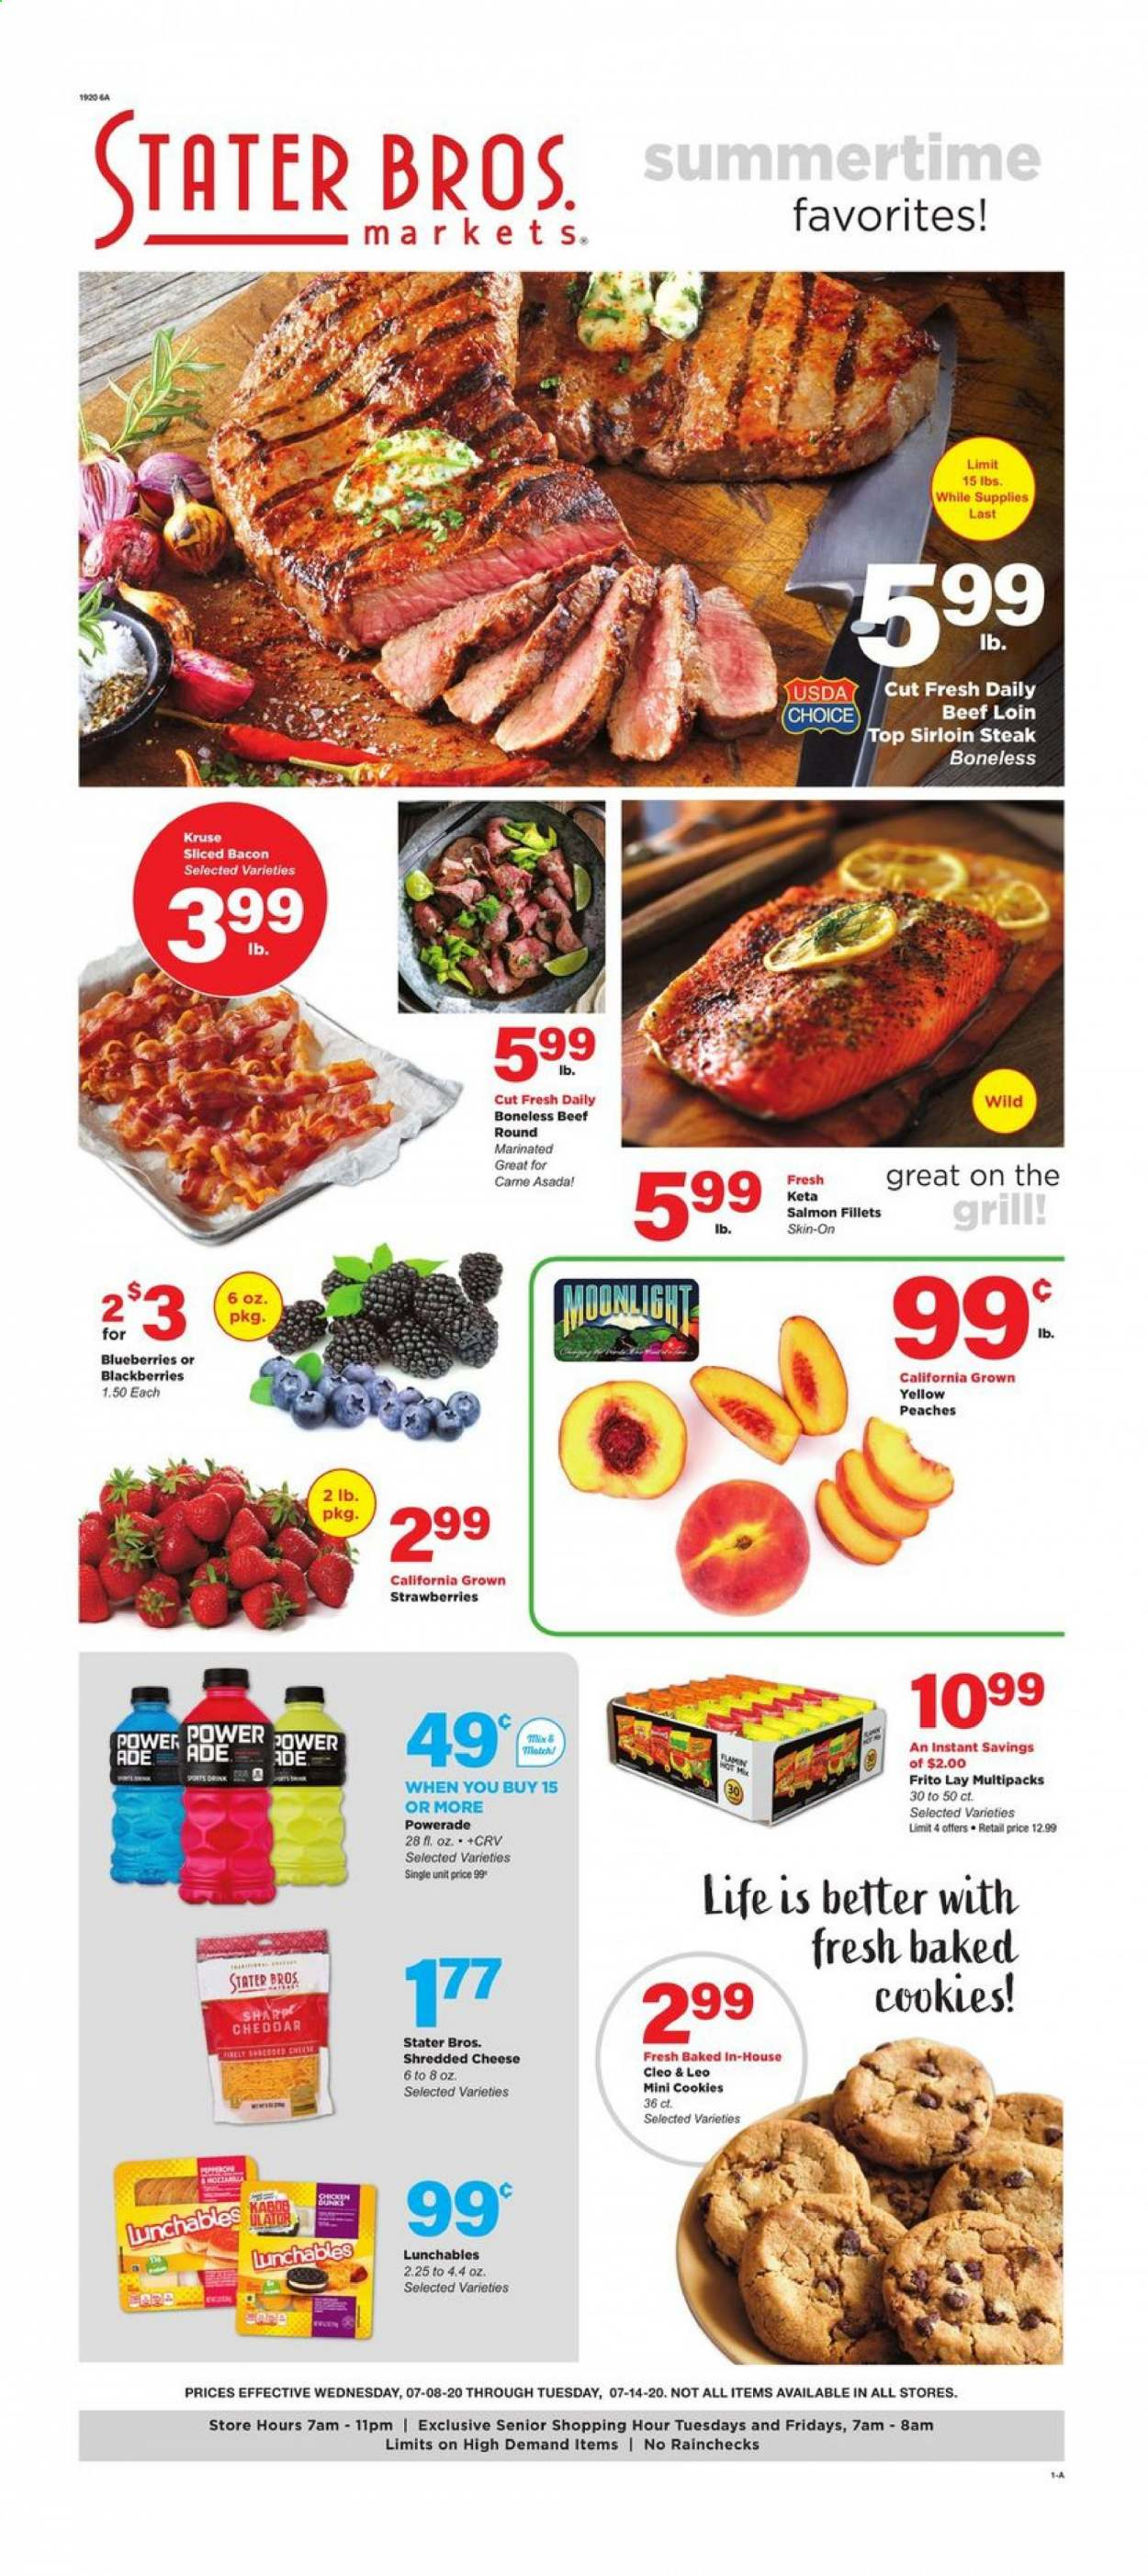 Stater Bros. Flyer - 07.08.2020 - 07.14.2020 - Sales products - bacon, beef meat, blackberries, blueberries, cookies, grill, salmon, sharp, shredded cheese, strawberries, powerade, cheddar, chicken, peaches, steak, cheese. Page 1.